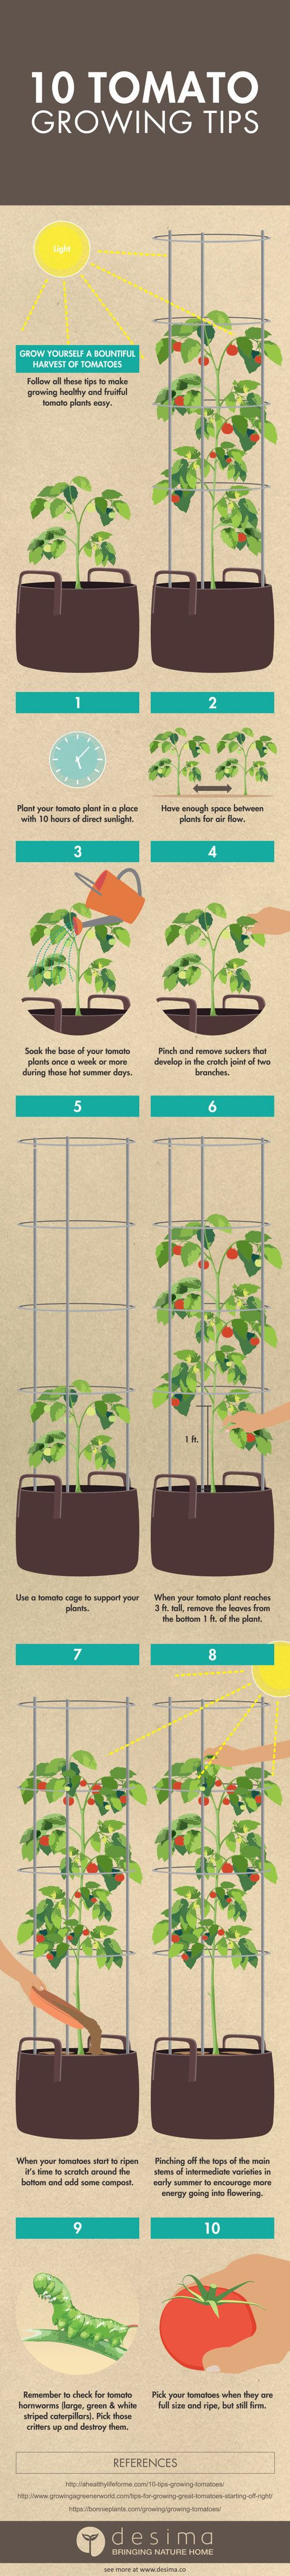 Follow all these tips to make growing healthy and fruitful tomato plants  easy.    1. Plant your tomato plant in a place with 10 hours of direct sunlight.  2. Have enough space between plants for air flow.  3. Soak the base of your tomato plants once a week or more during those hot  summer